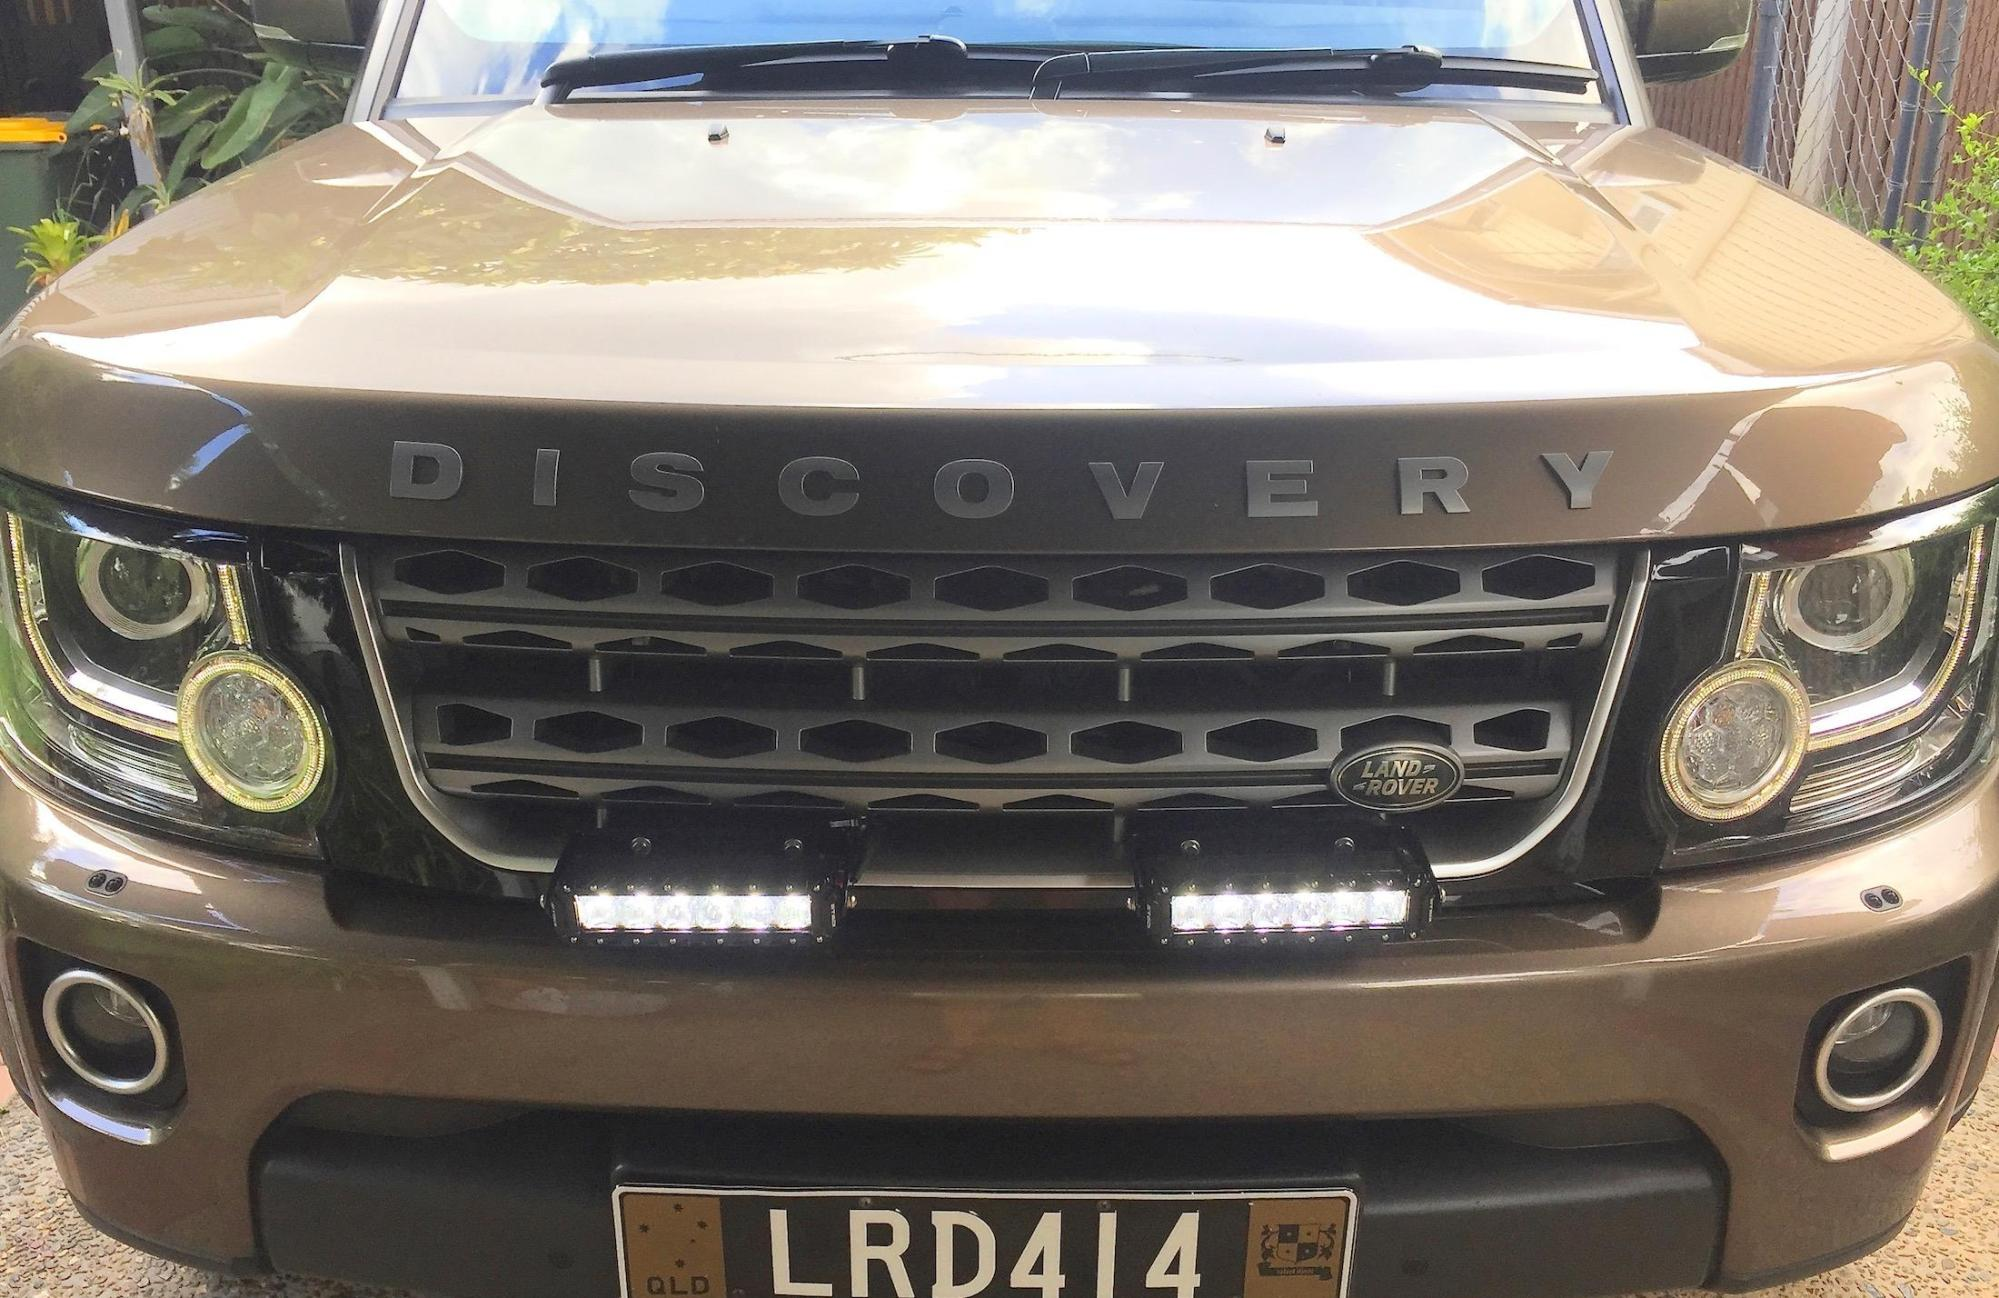 hight resolution of spot light wiring question australian land rover owners wiring driving light wiring australian land rover owners